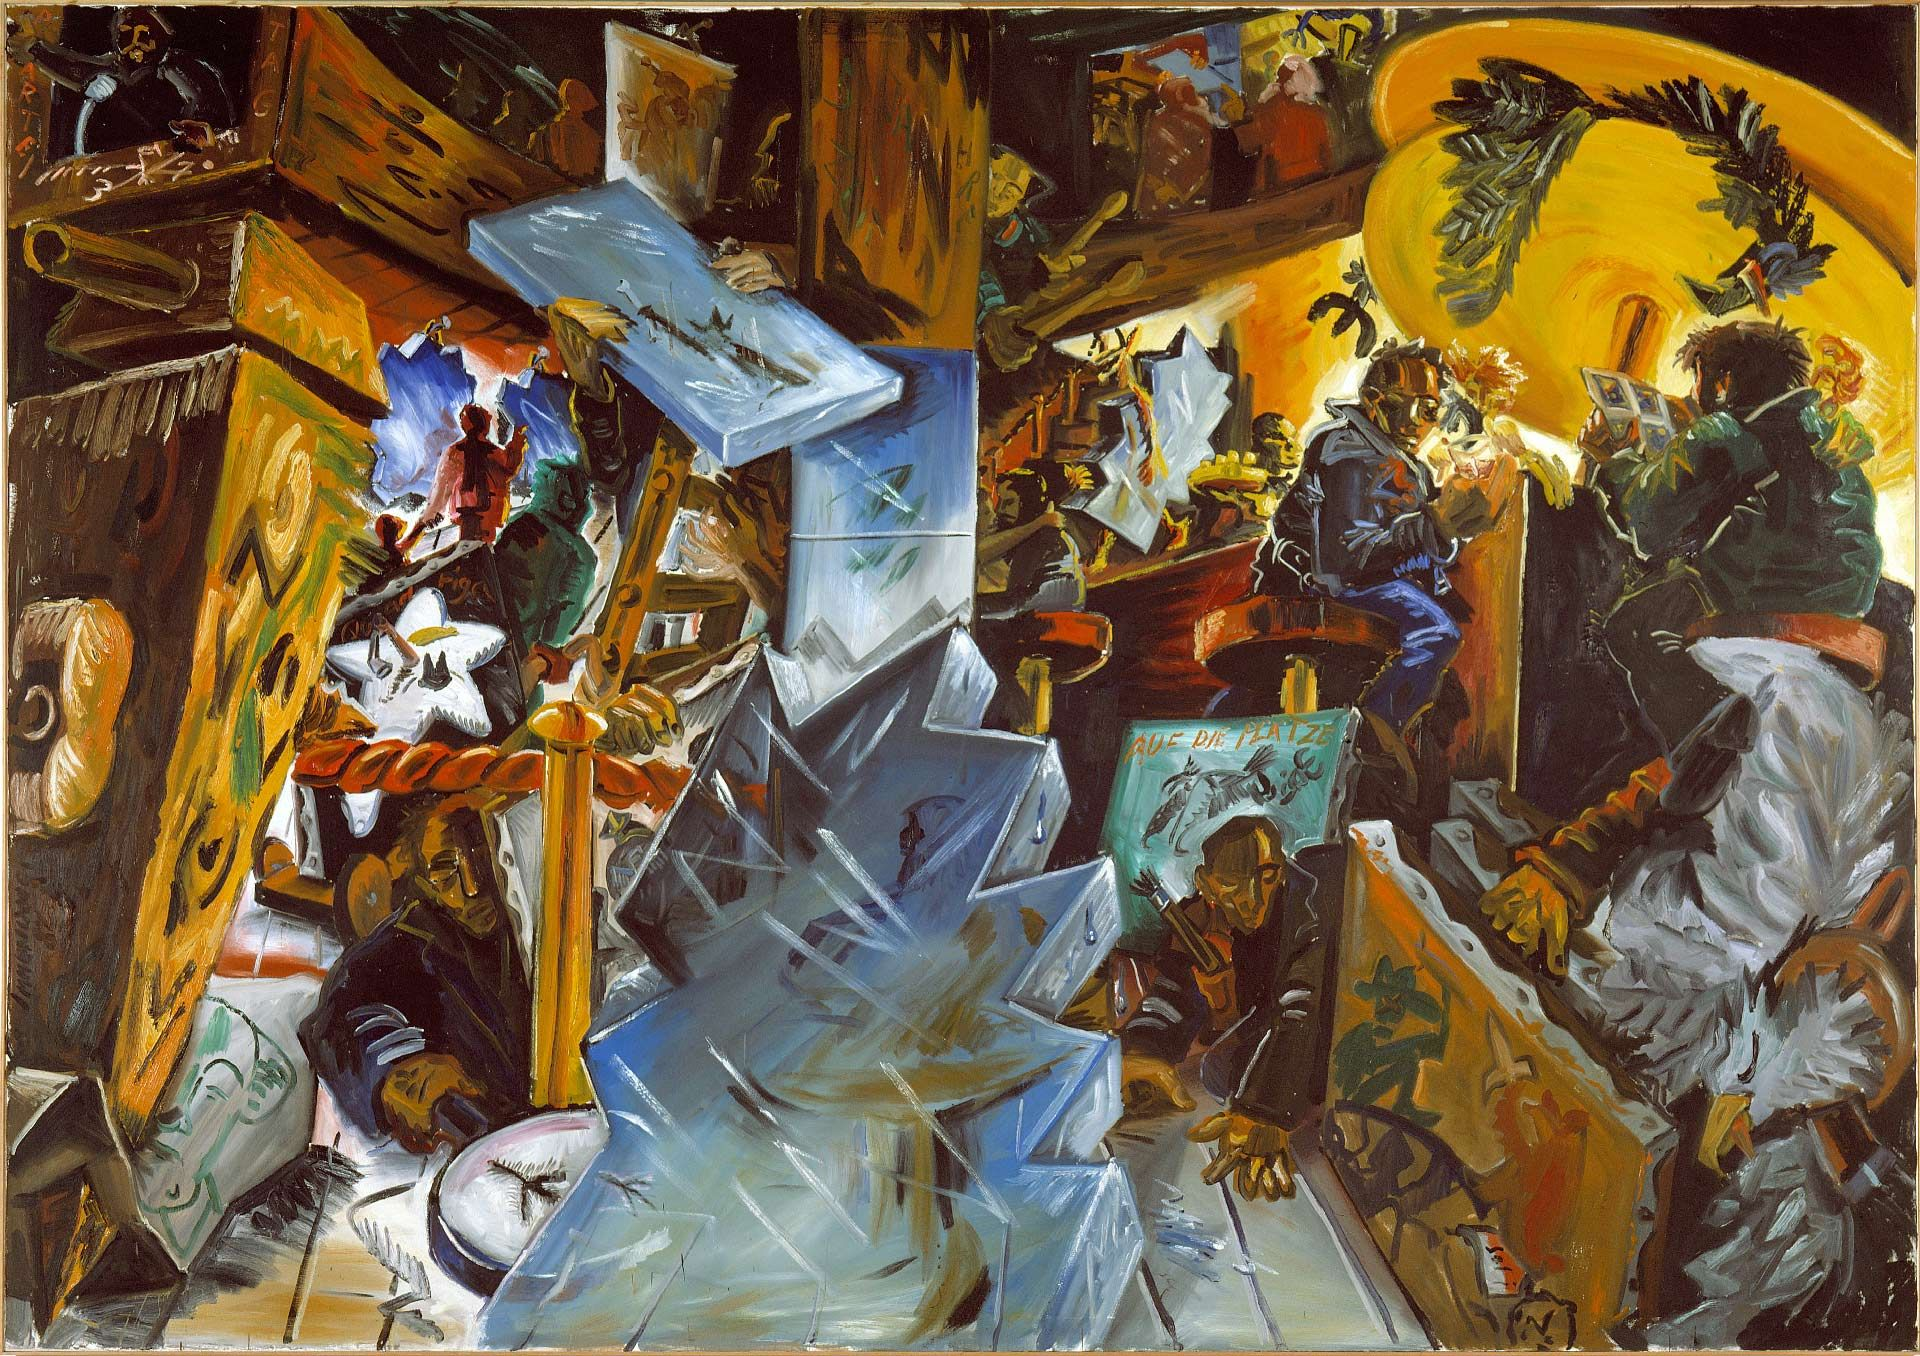 Jörg Immendorff, Deutschland Café XIII, 1982, oil on canvas, 282 x 400 cm. Purchase, Horsley and Annie Townsend Bequest.